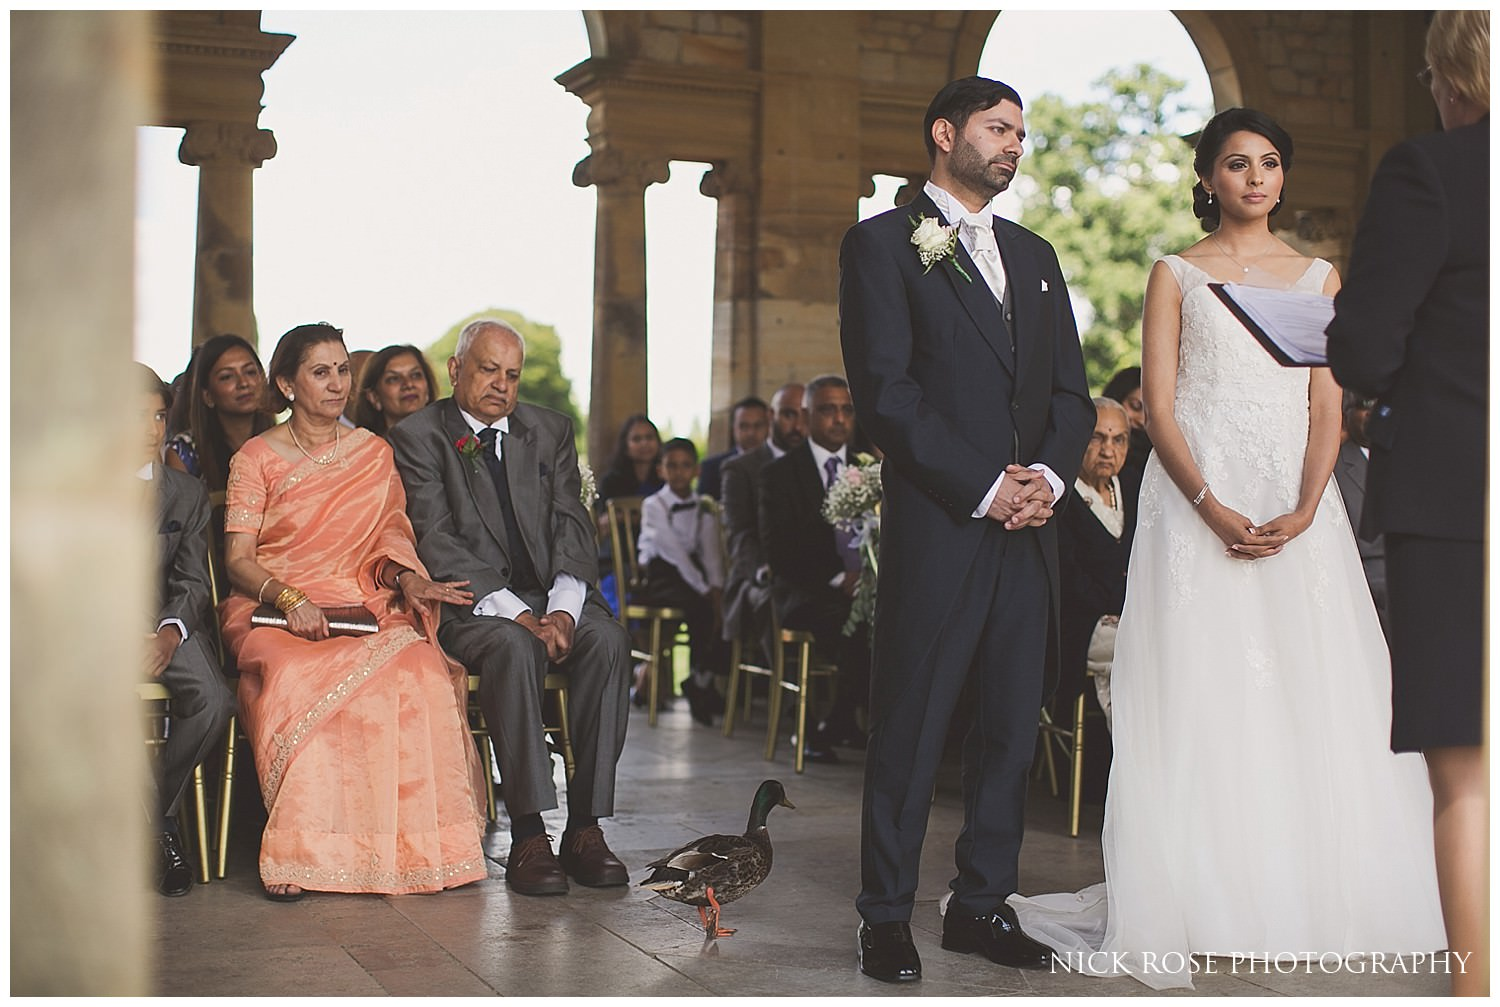 Bride and groom and ducks during a Hever Castle garden wedding in Kent